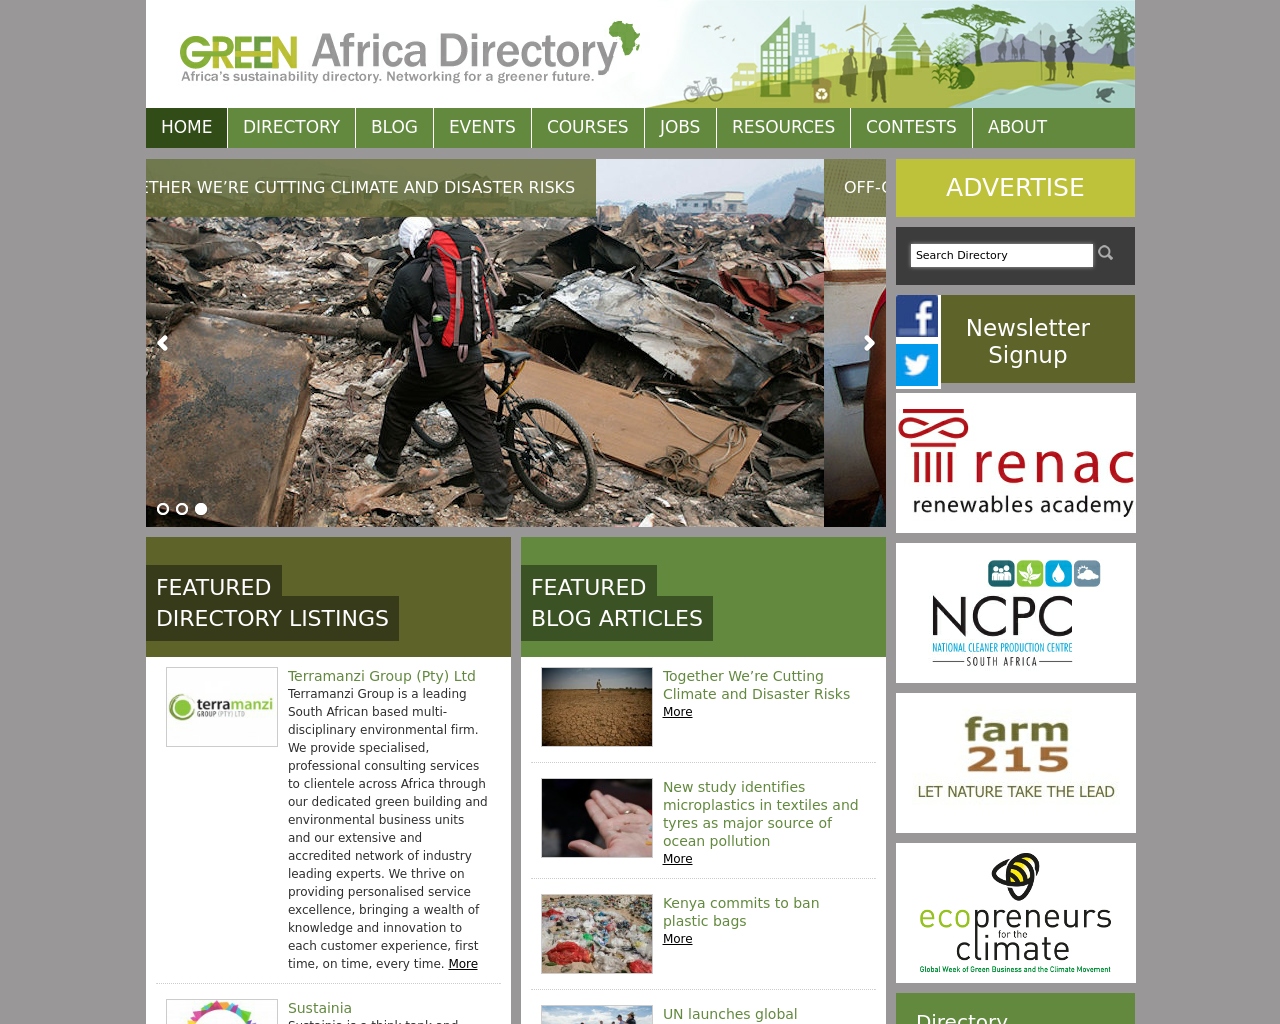 Green-Africa-Directory-Advertising-Reviews-Pricing